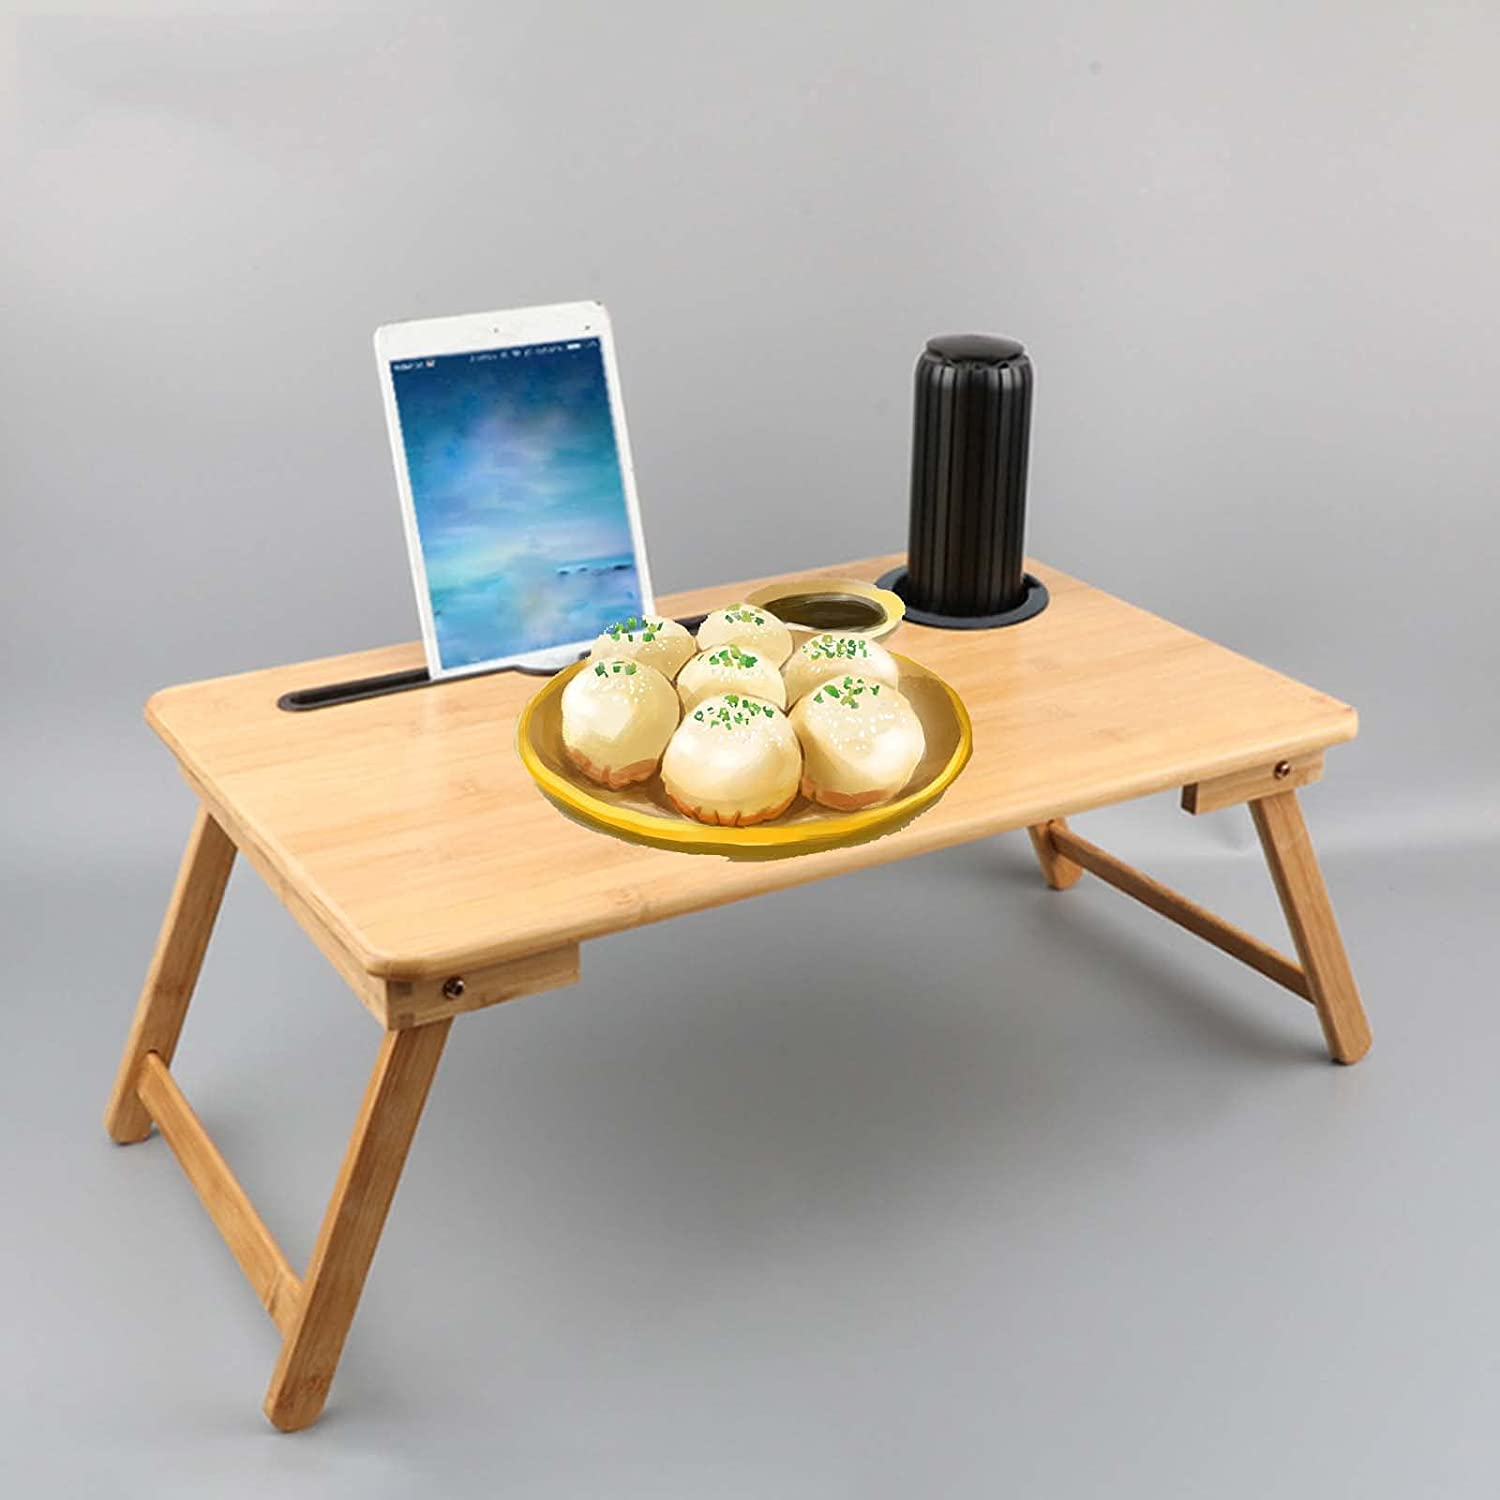 ZRXRY Fashion Portable All items in the store Wine Picnic Table Lap Folding Wooden Side